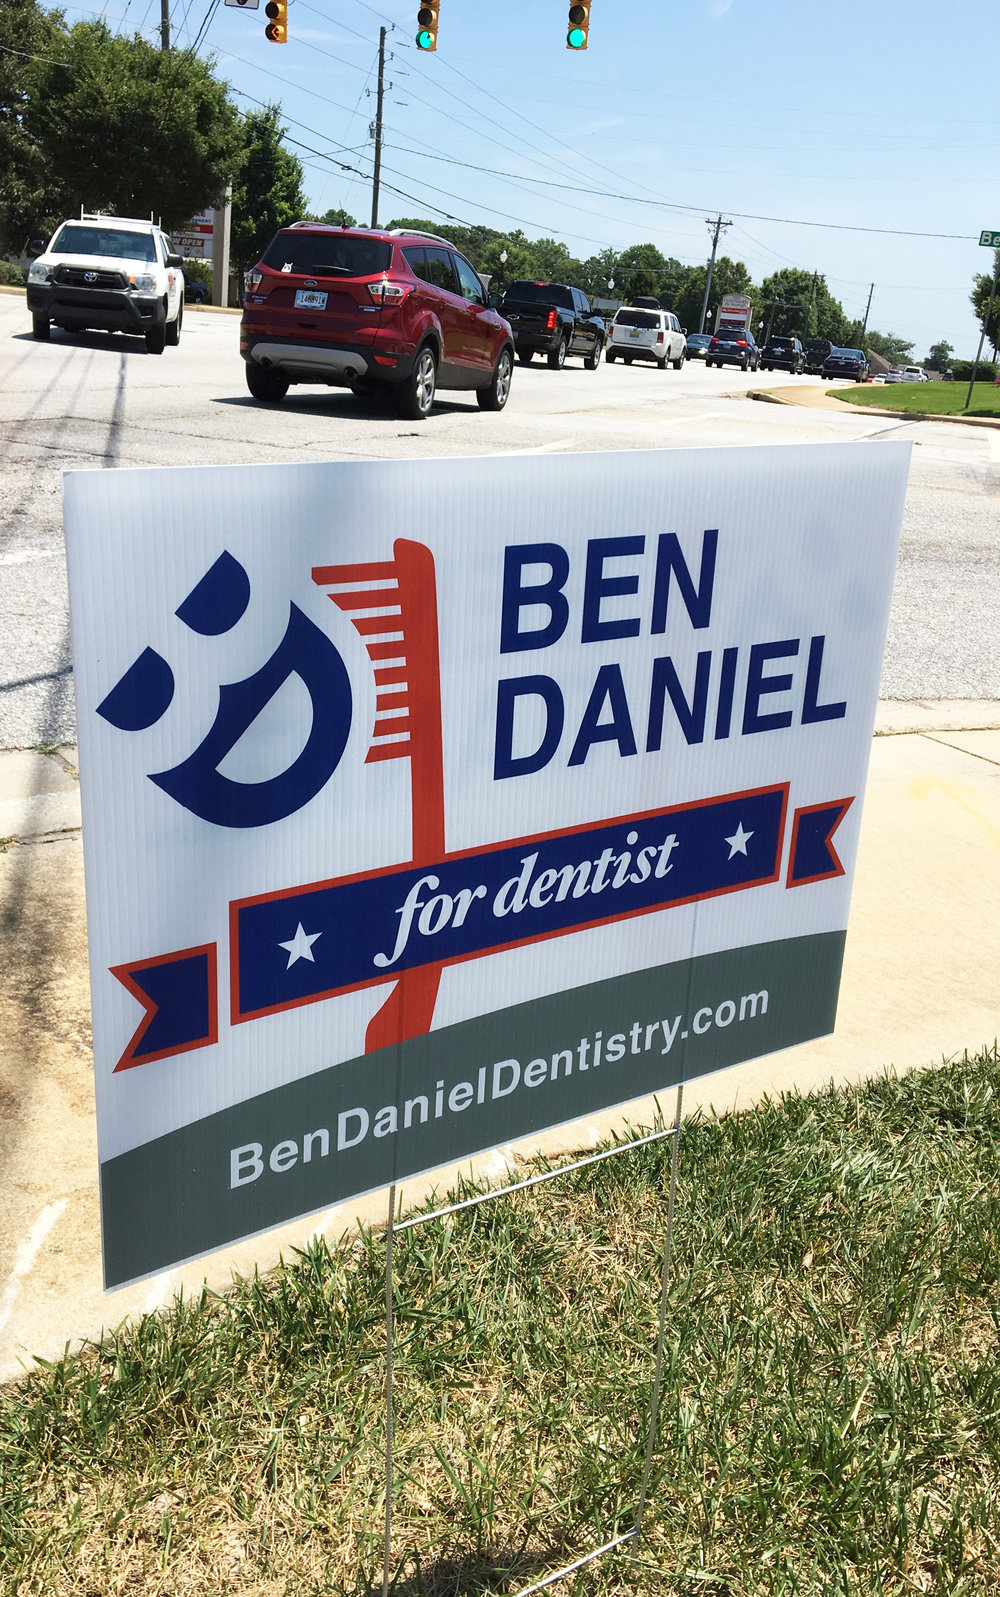 vote-guerilla-marketing-Ben-Daniel-for-dentist-2.jpg